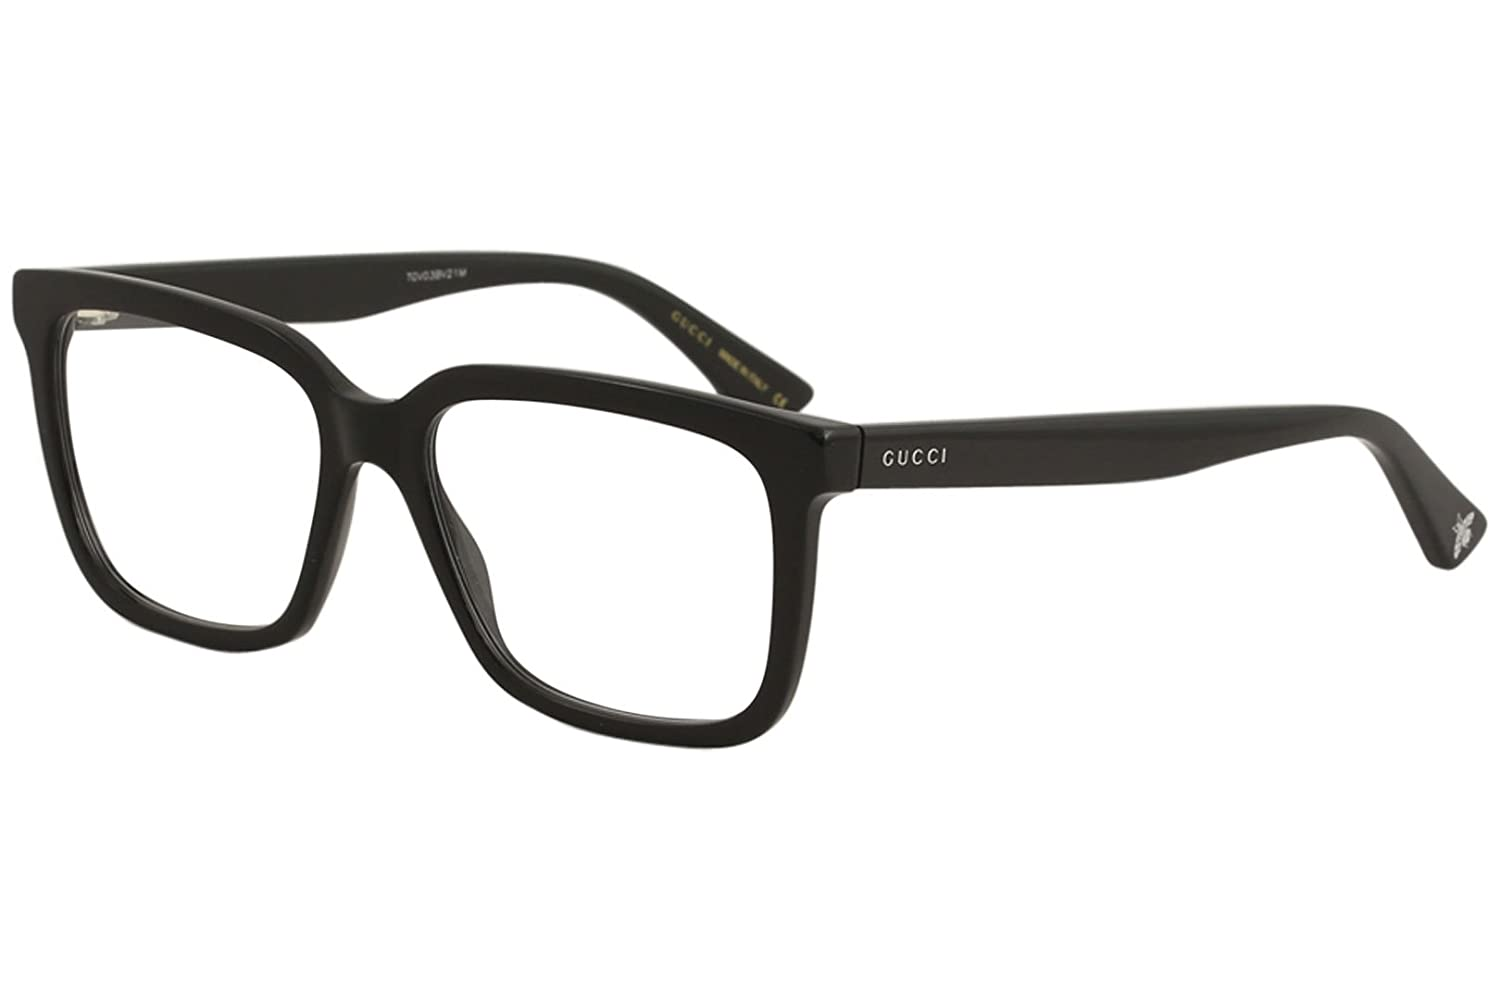 Amazon.com: Gucci GG 0160 O- 005 BLACK Eyeglasses: Clothing